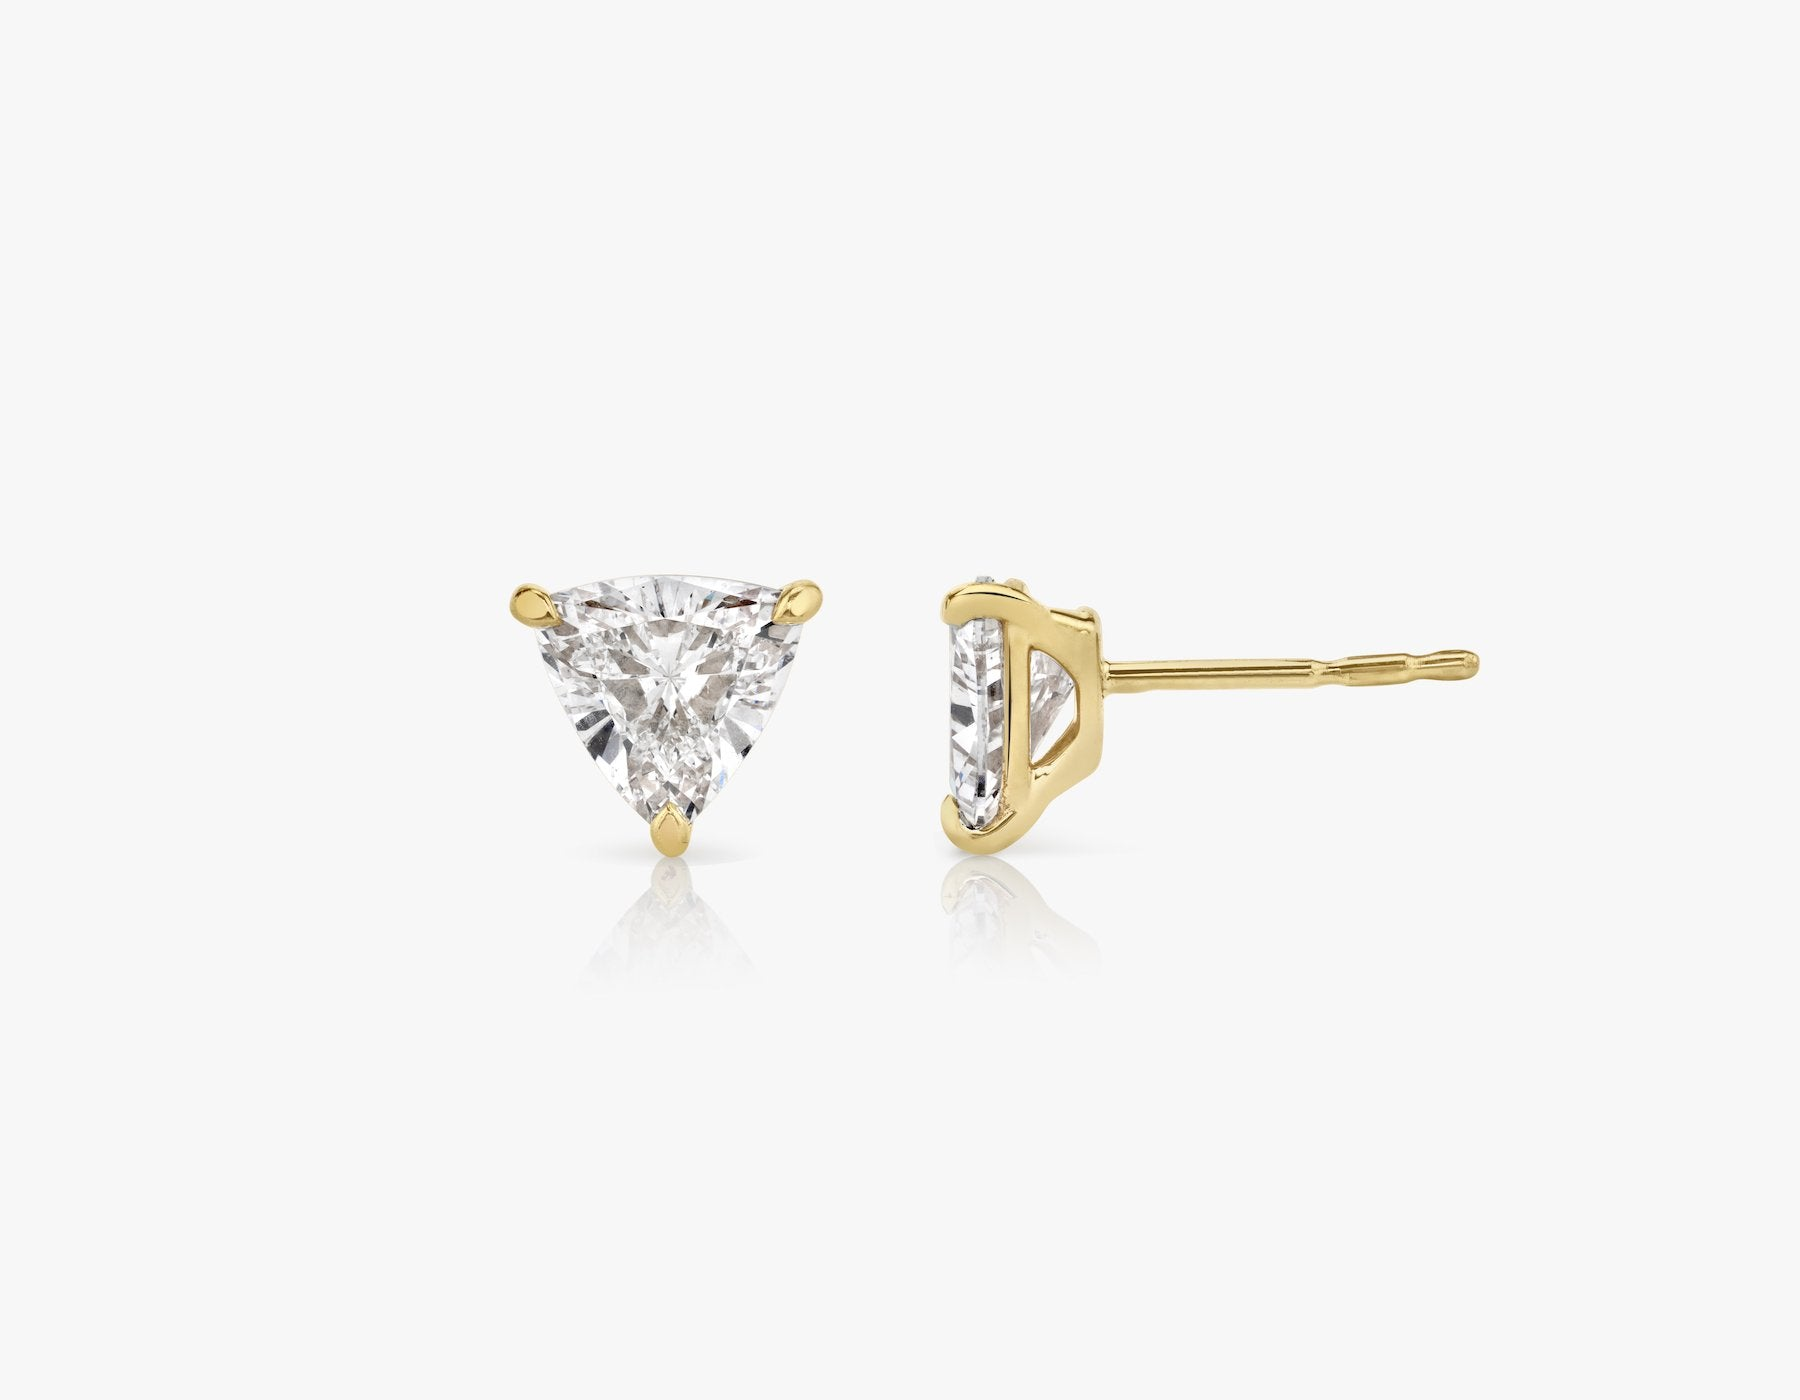 Vrai 14k solid gold Solitaire Trillion Diamond Studs sustainably created triangle diamonds prong set earrings side view, 14K Yellow Gold